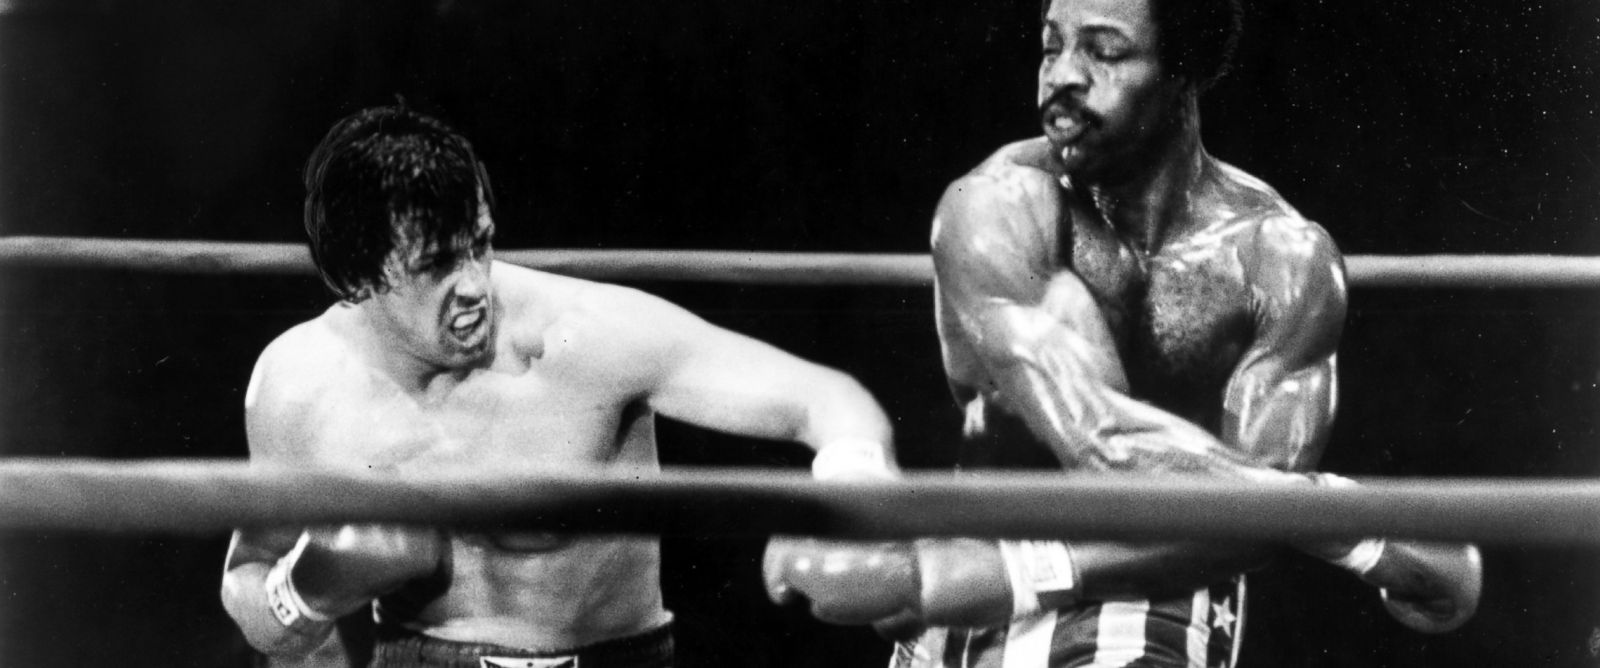 "PHOTO: Sylvester Stallone and Carl Weathers perform in a boxing scene from the movie ""Rocky"" directed by John G. Avildsen."